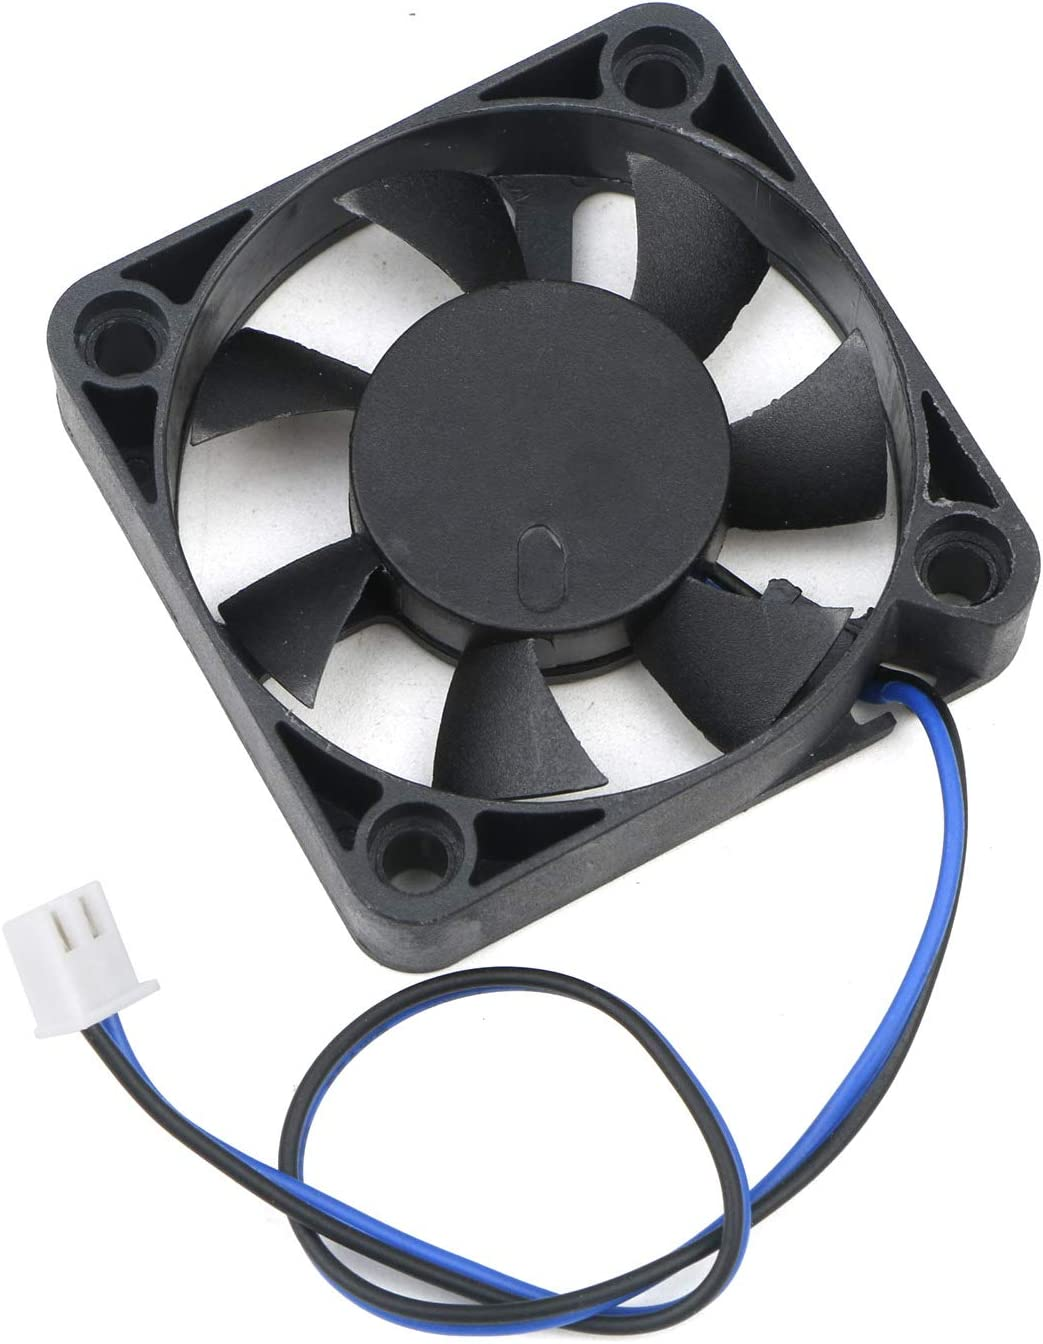 Senmod 50mm X 50mm X 11.5mm 2 Pin Dc 12V 0.18A 6000 RPM Mini Quiet Cooling Fan/ for 3D Printer Computer DVR,DIY Cooling Ventilation Exhaust Projects Sleeve Bearing 7 Blades Pack of 4